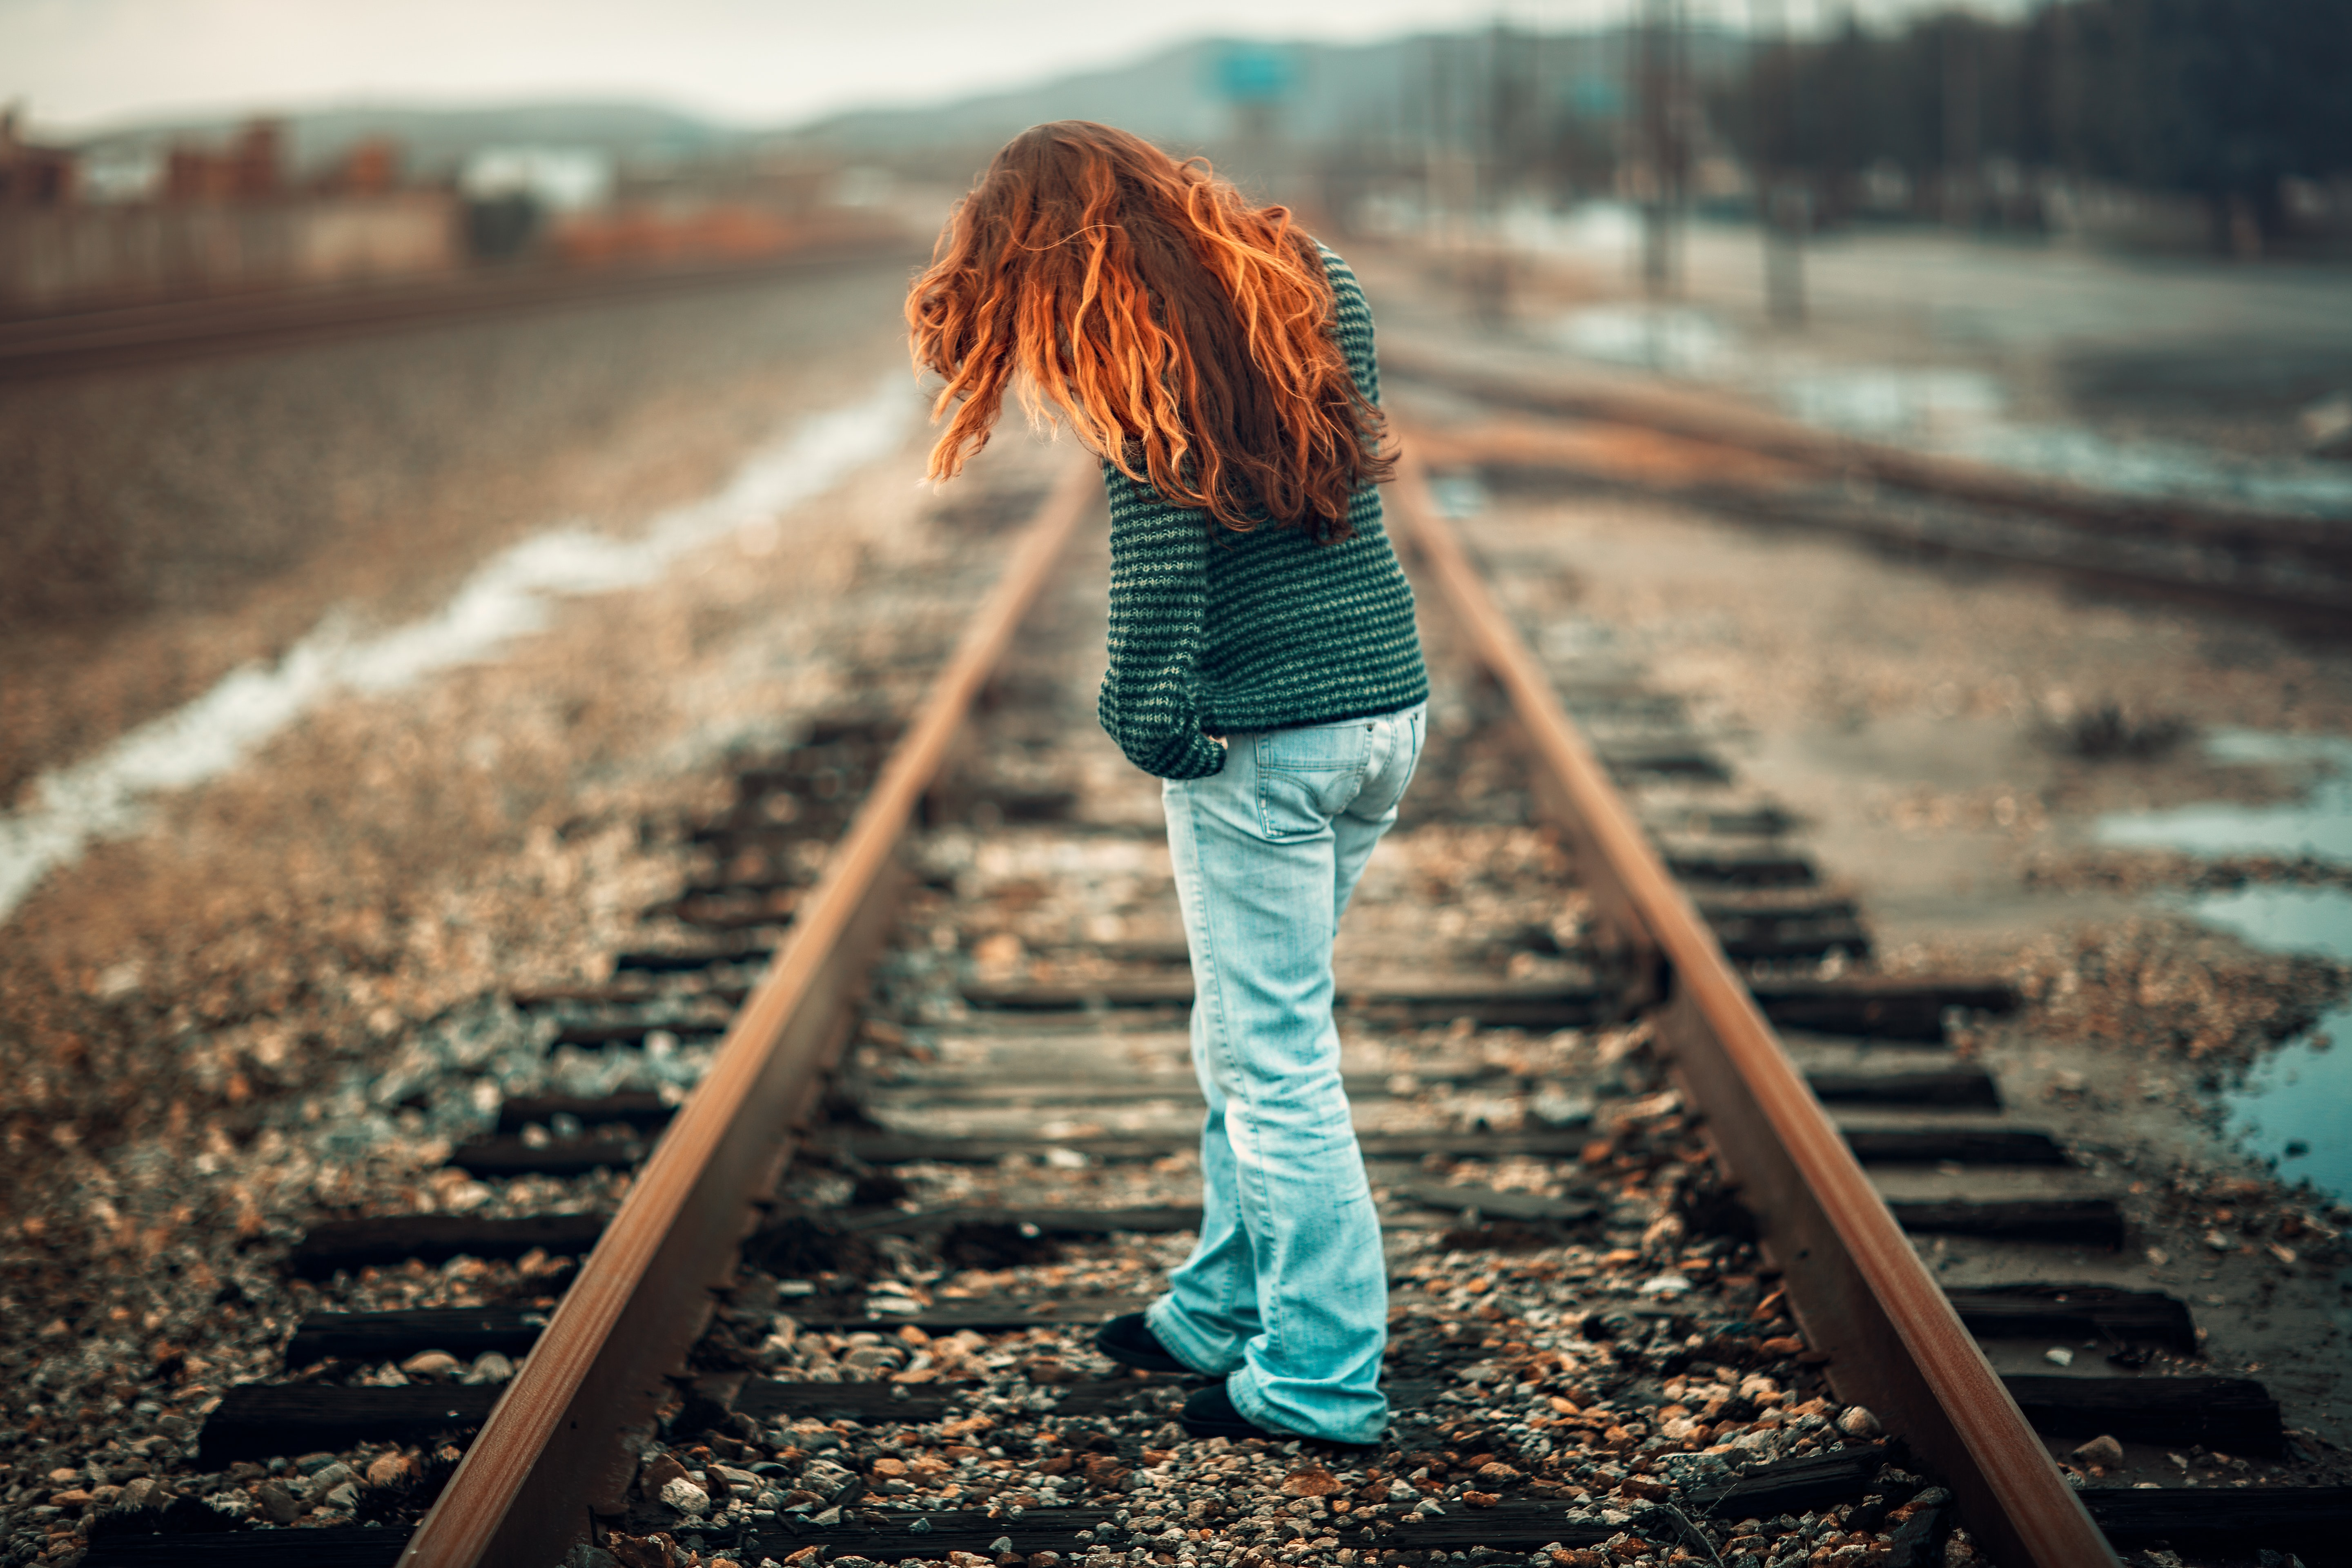 woman with orange hair wearing black and gray stripe long-sleeve shirt and light-blue denim pants standing on train rail at day